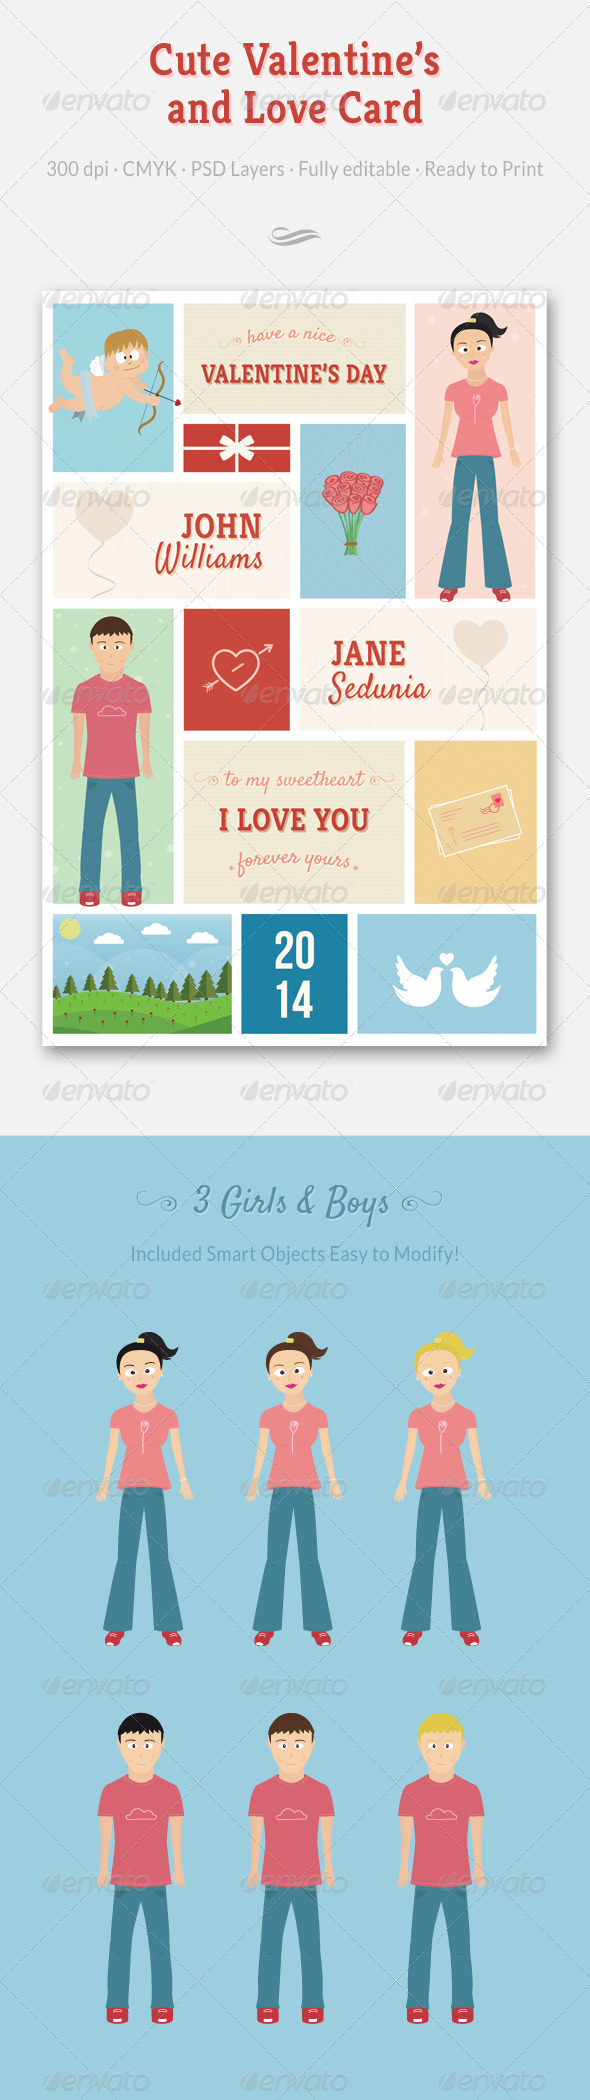 GraphicRiver Cute Valentine s and Love Card 6584932